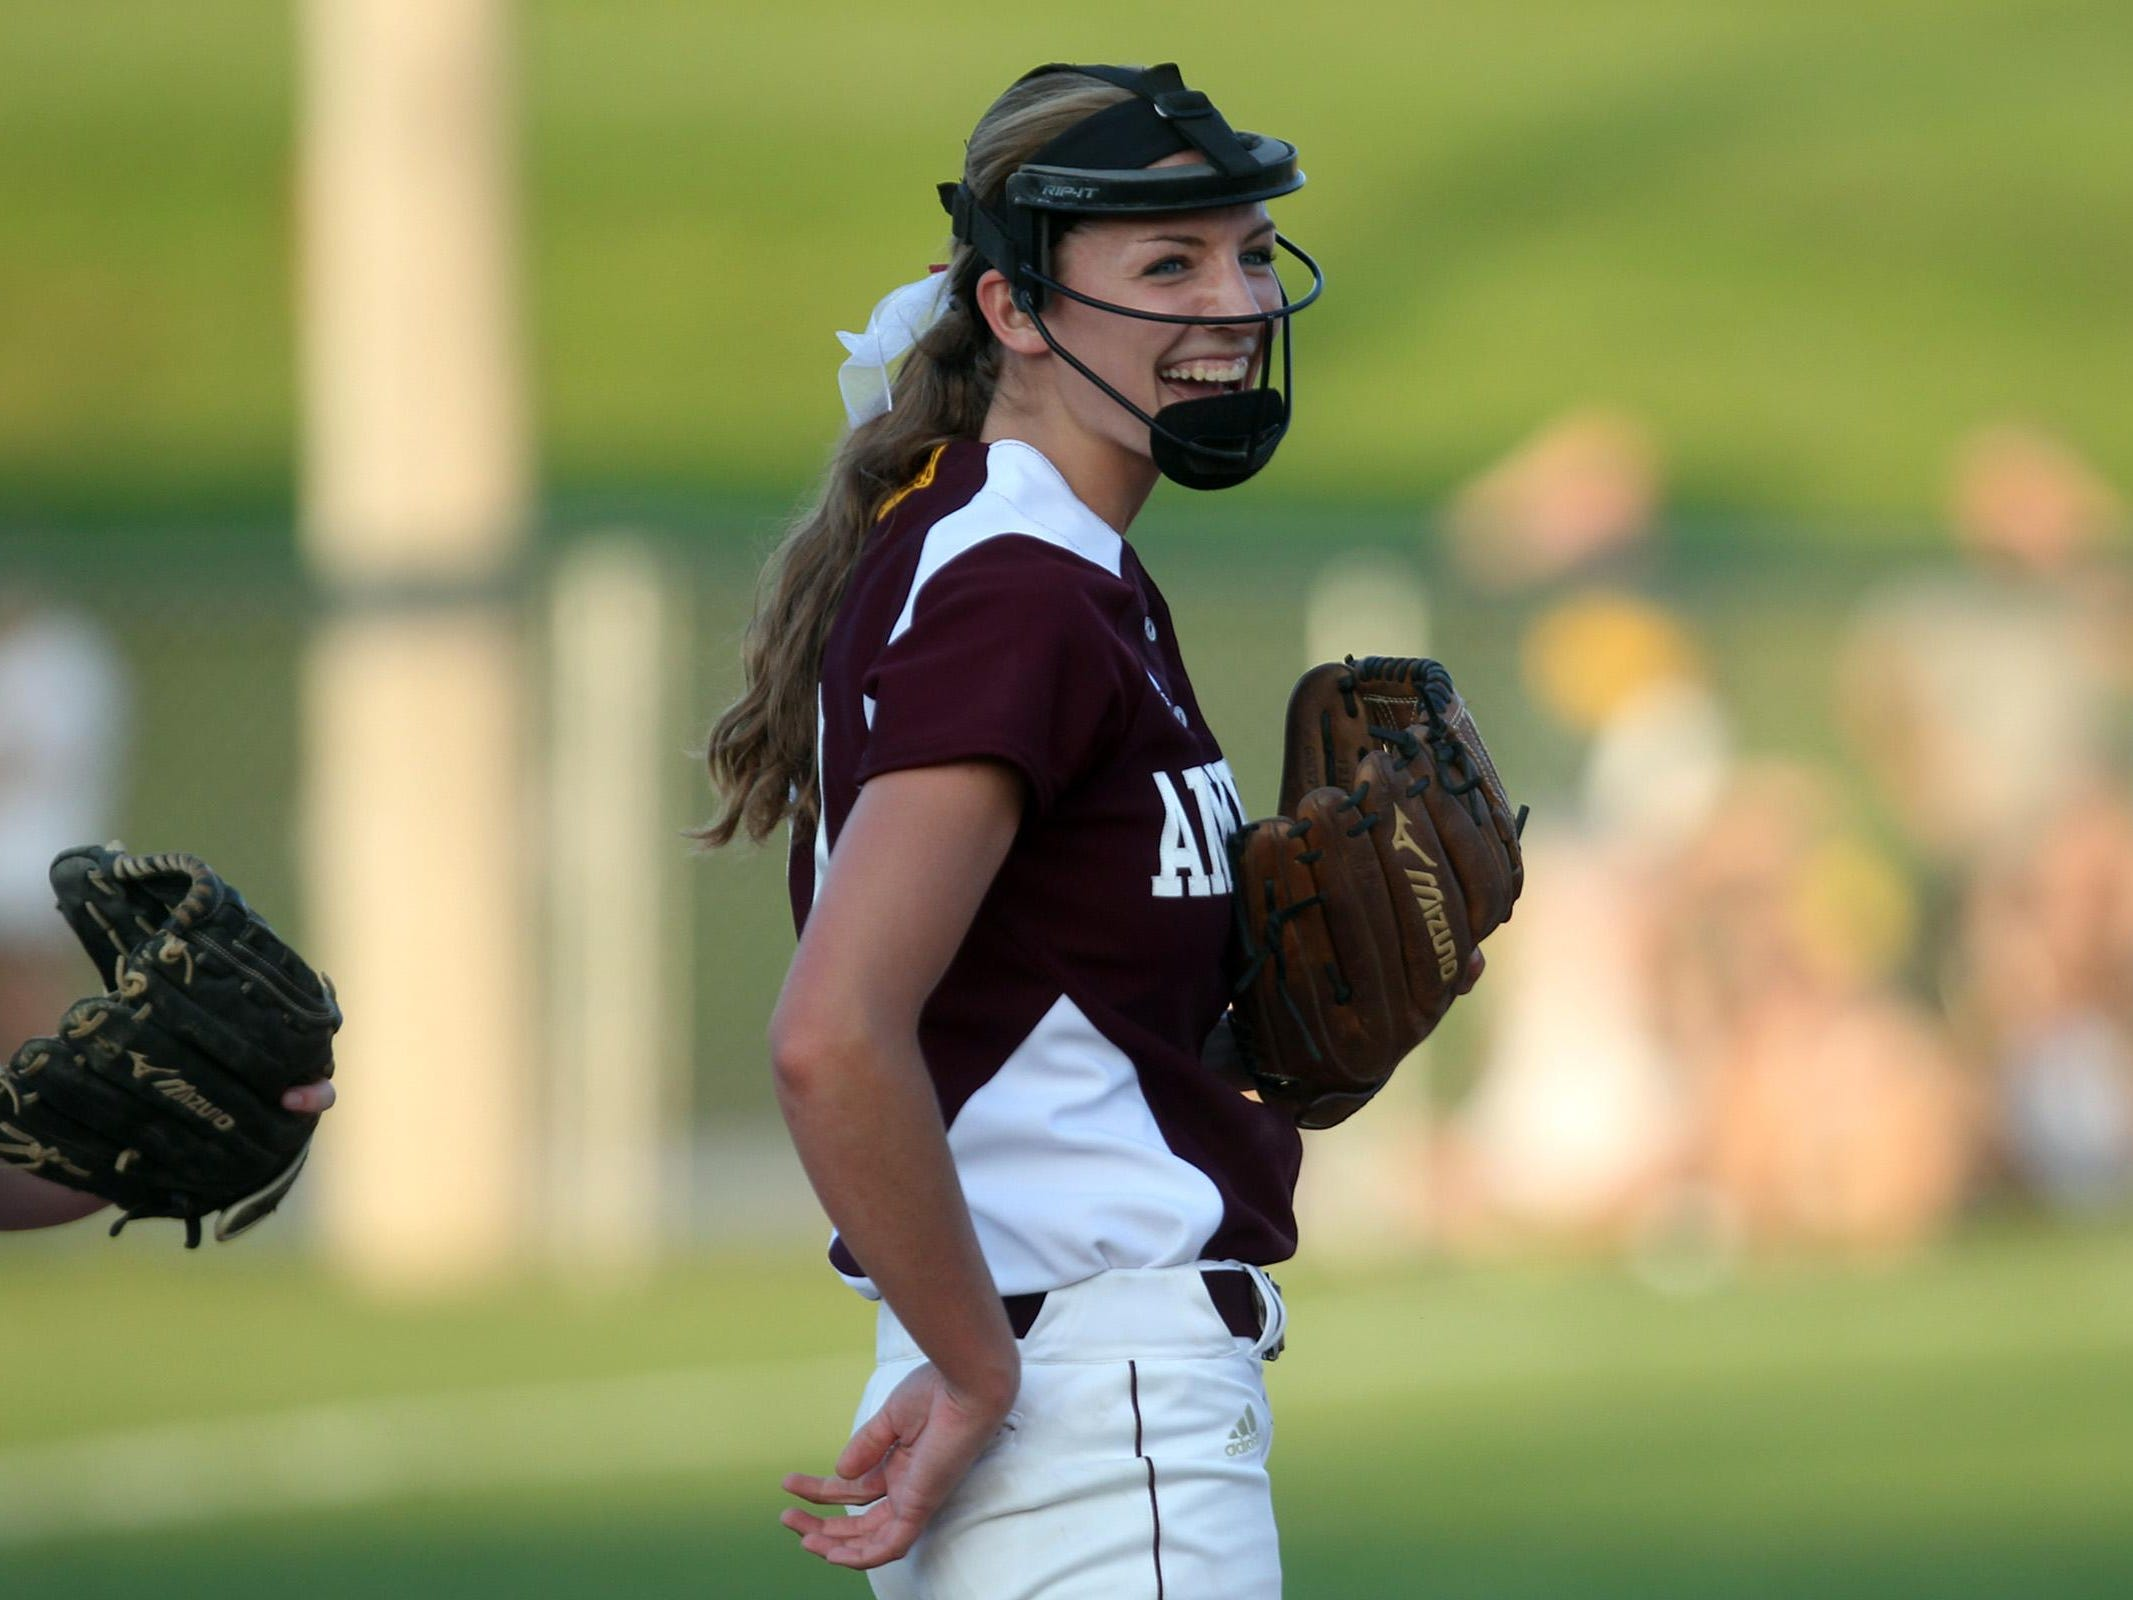 Ankeny pitcher Allison Doocy smiles after a strikeout during the Hawkettes' Class 5A regional championship game at West High on Tuesday, July 14, 2015. Ankeny won, 3-1, to head to state. David Scrivner / Iowa City Press-Citizen